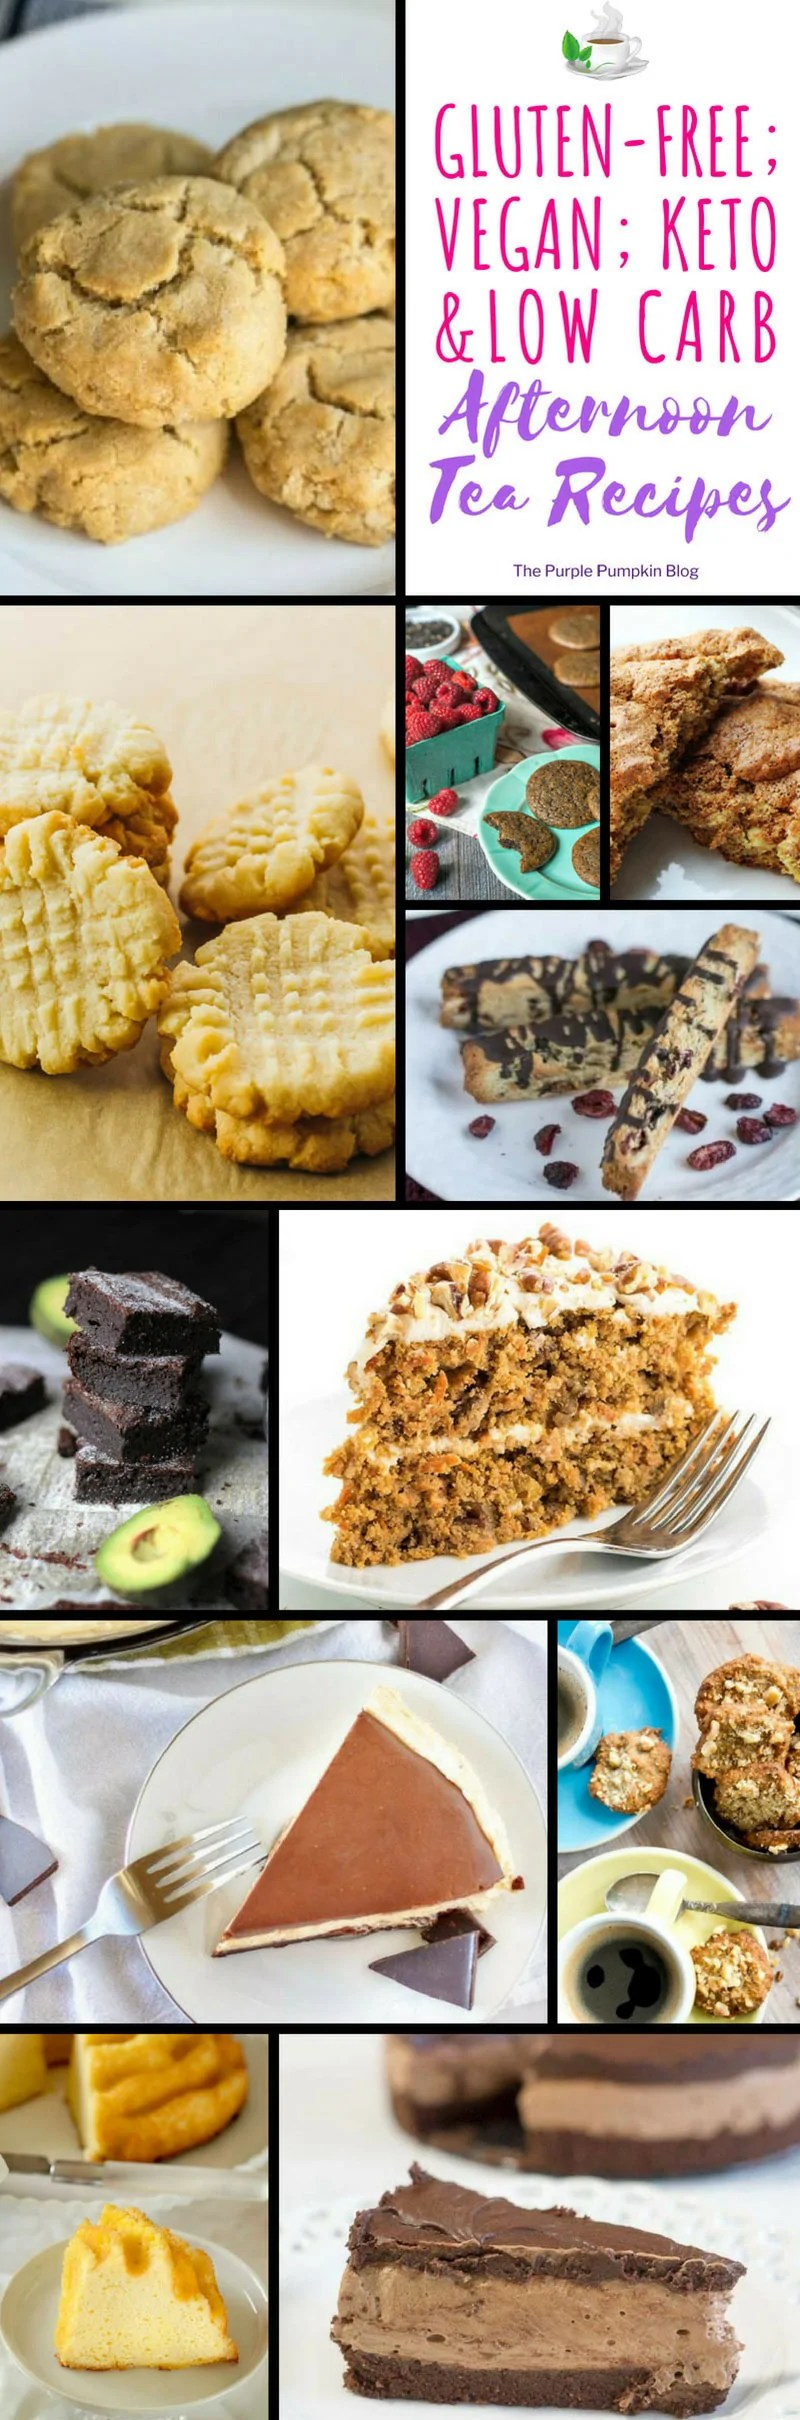 Vegan; Gluten-Free; Keto; Low Carb Afternoon Tea Recipes - don't miss out on afternoon tea if you have special dietary requirements - lots of delicious recipes here!